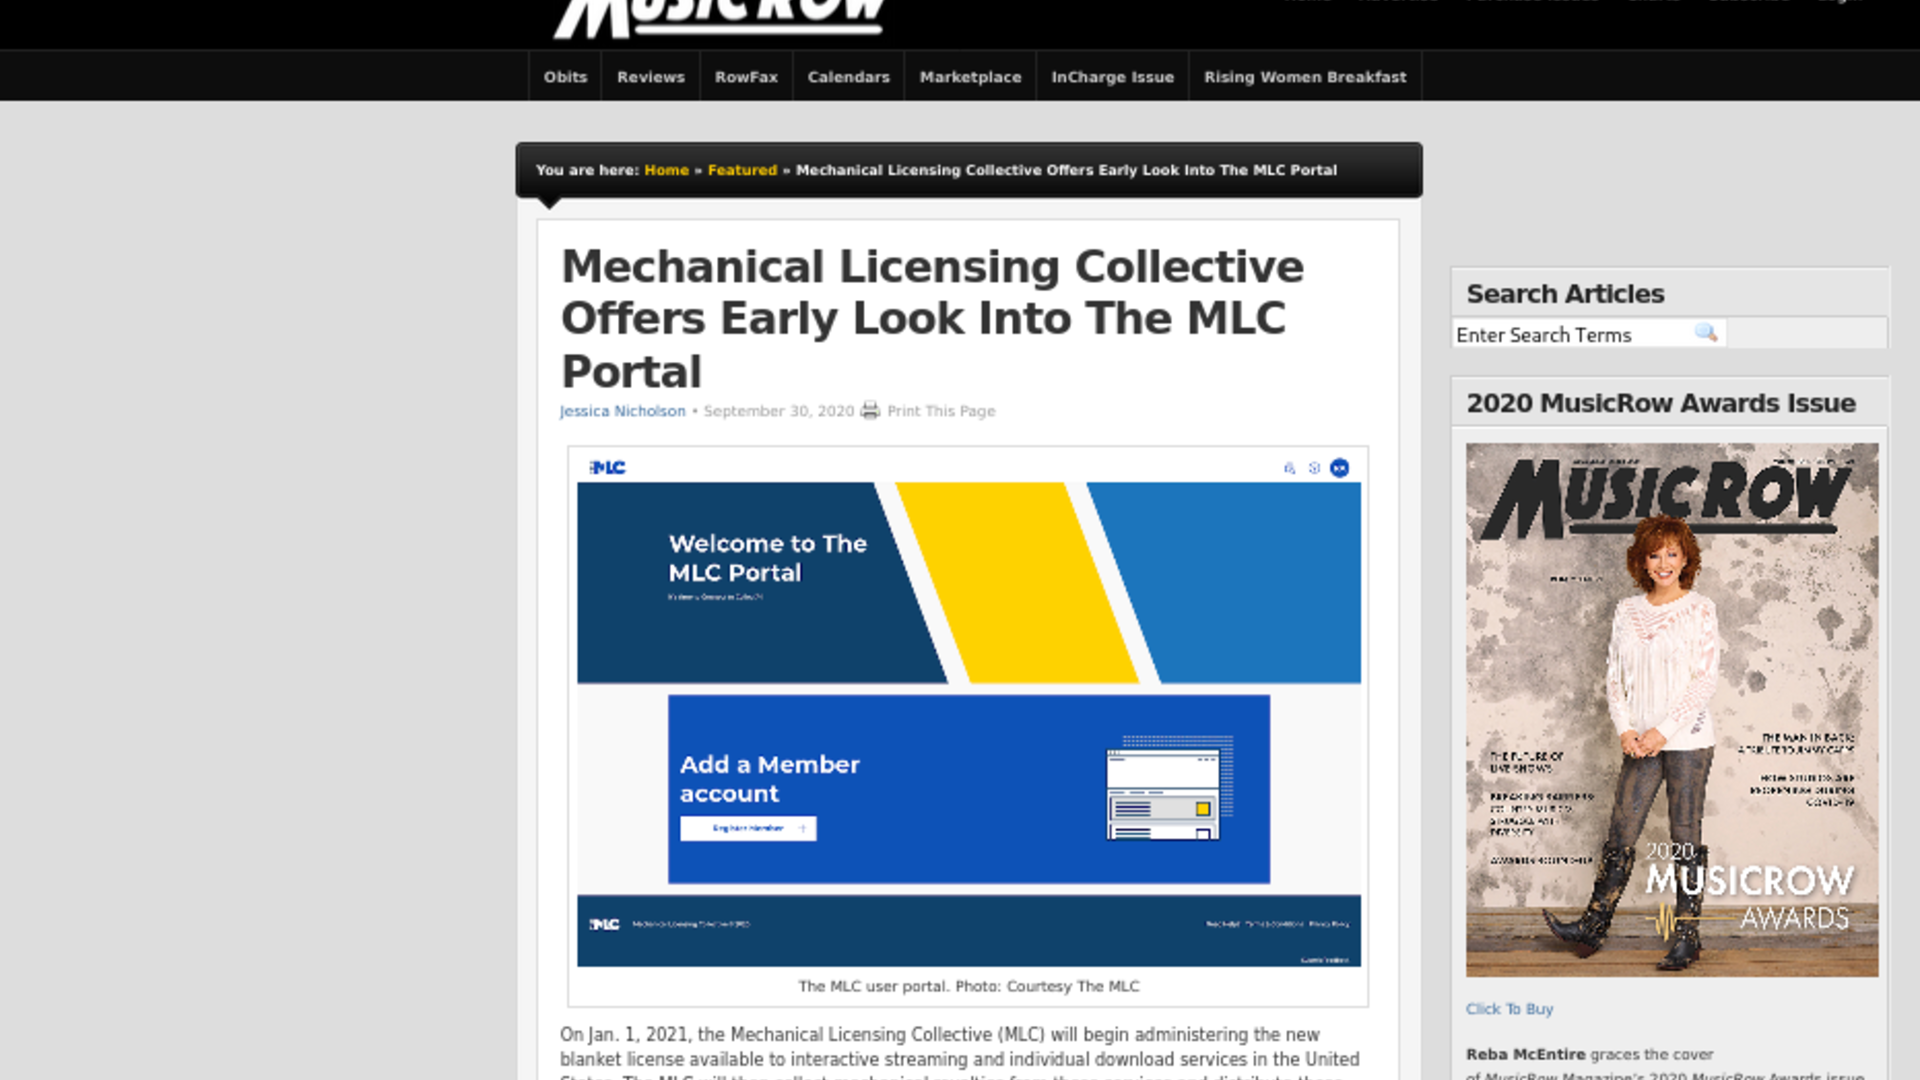 Fairness Rocks News Mechanical Licensing Collective Offers Early Look Into The MLC Portal